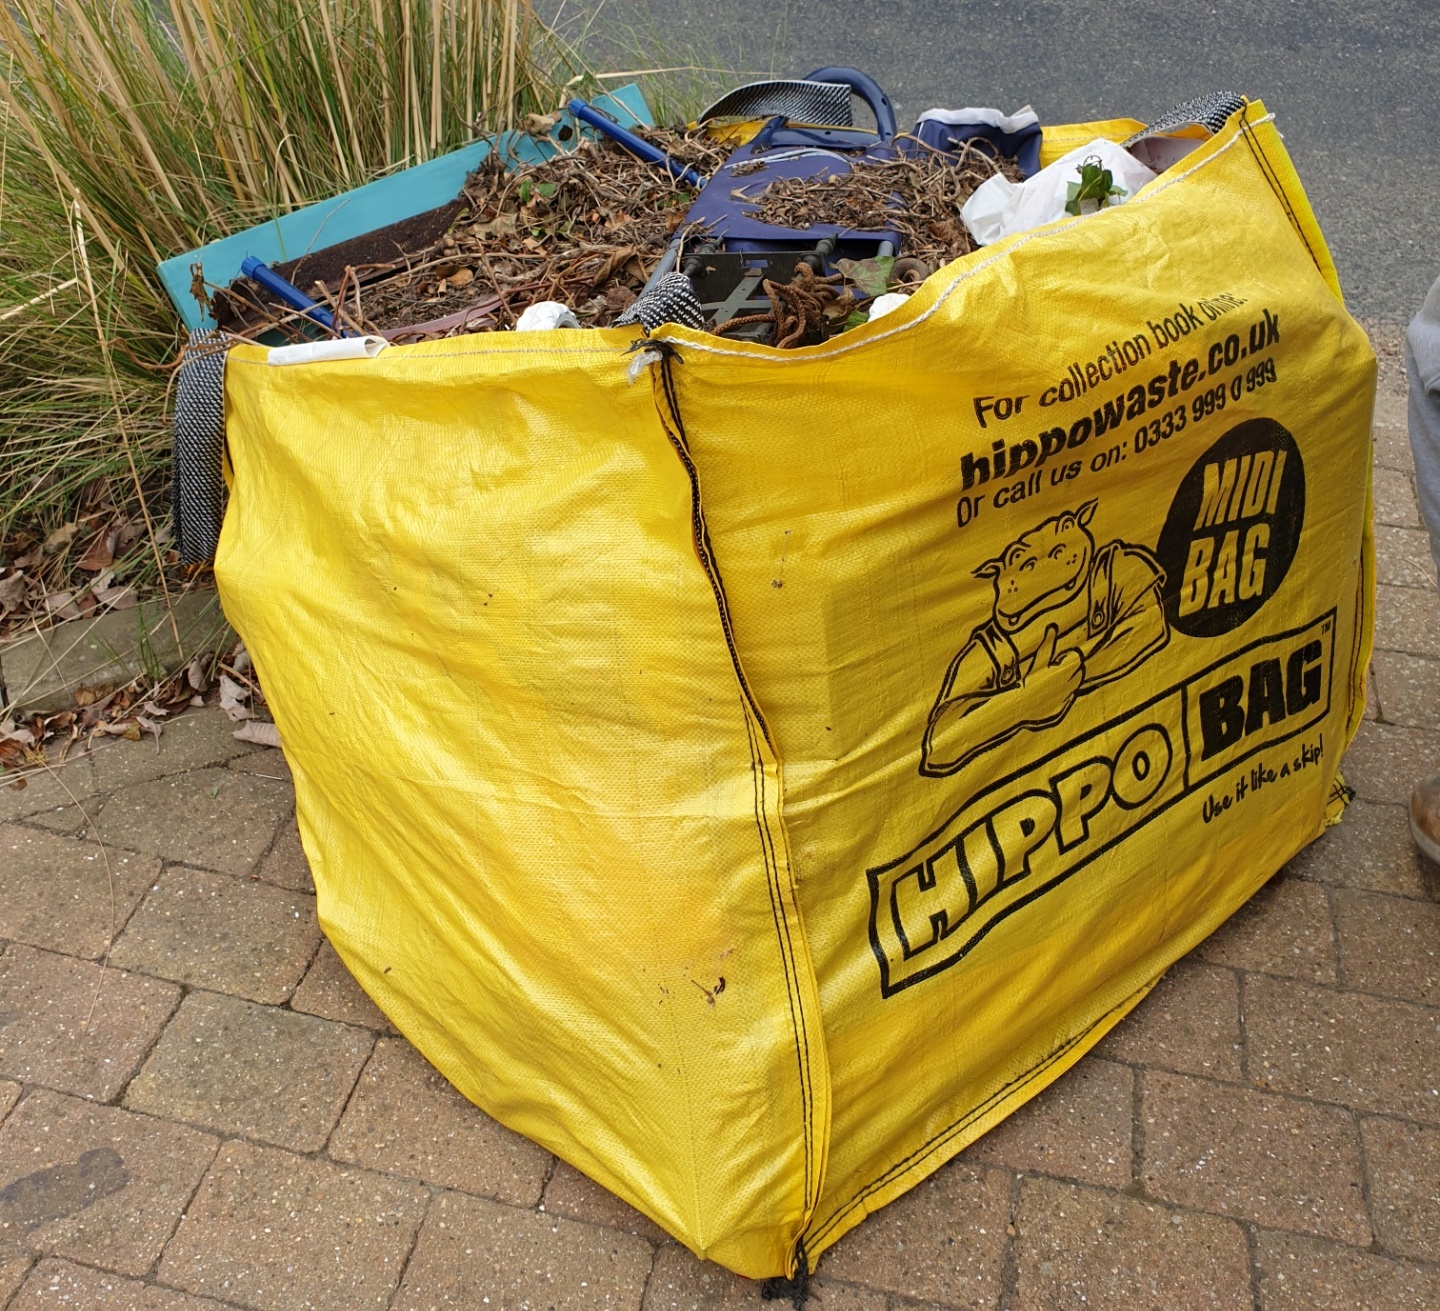 skip bag full of trade diy waste waiting for collection and disposal